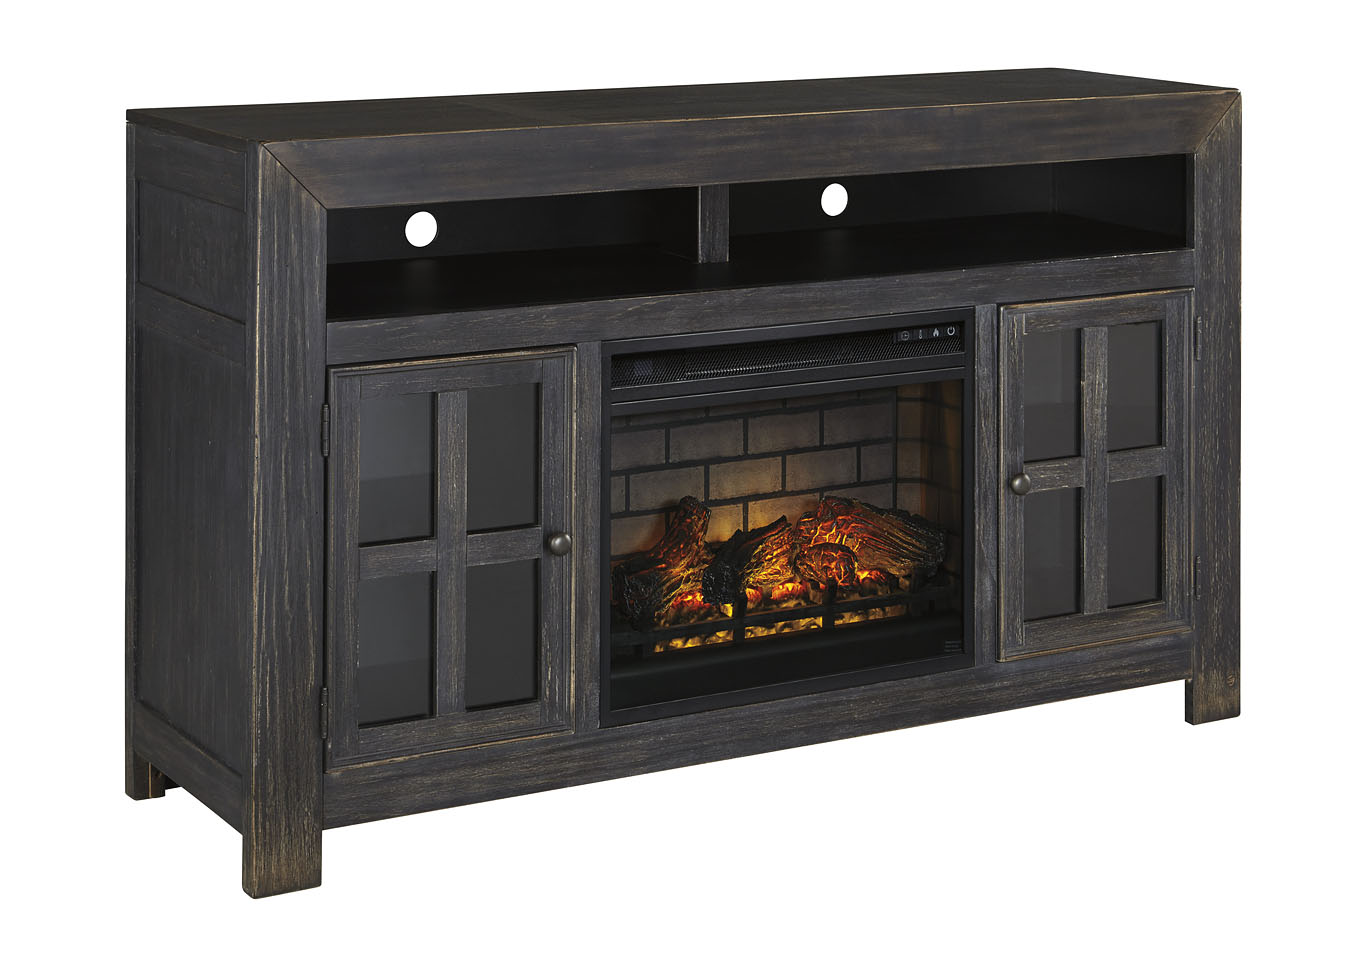 "Gavelston Black 61"" TV Stand w/Fireplace Insert Infrared,Signature Design By Ashley"